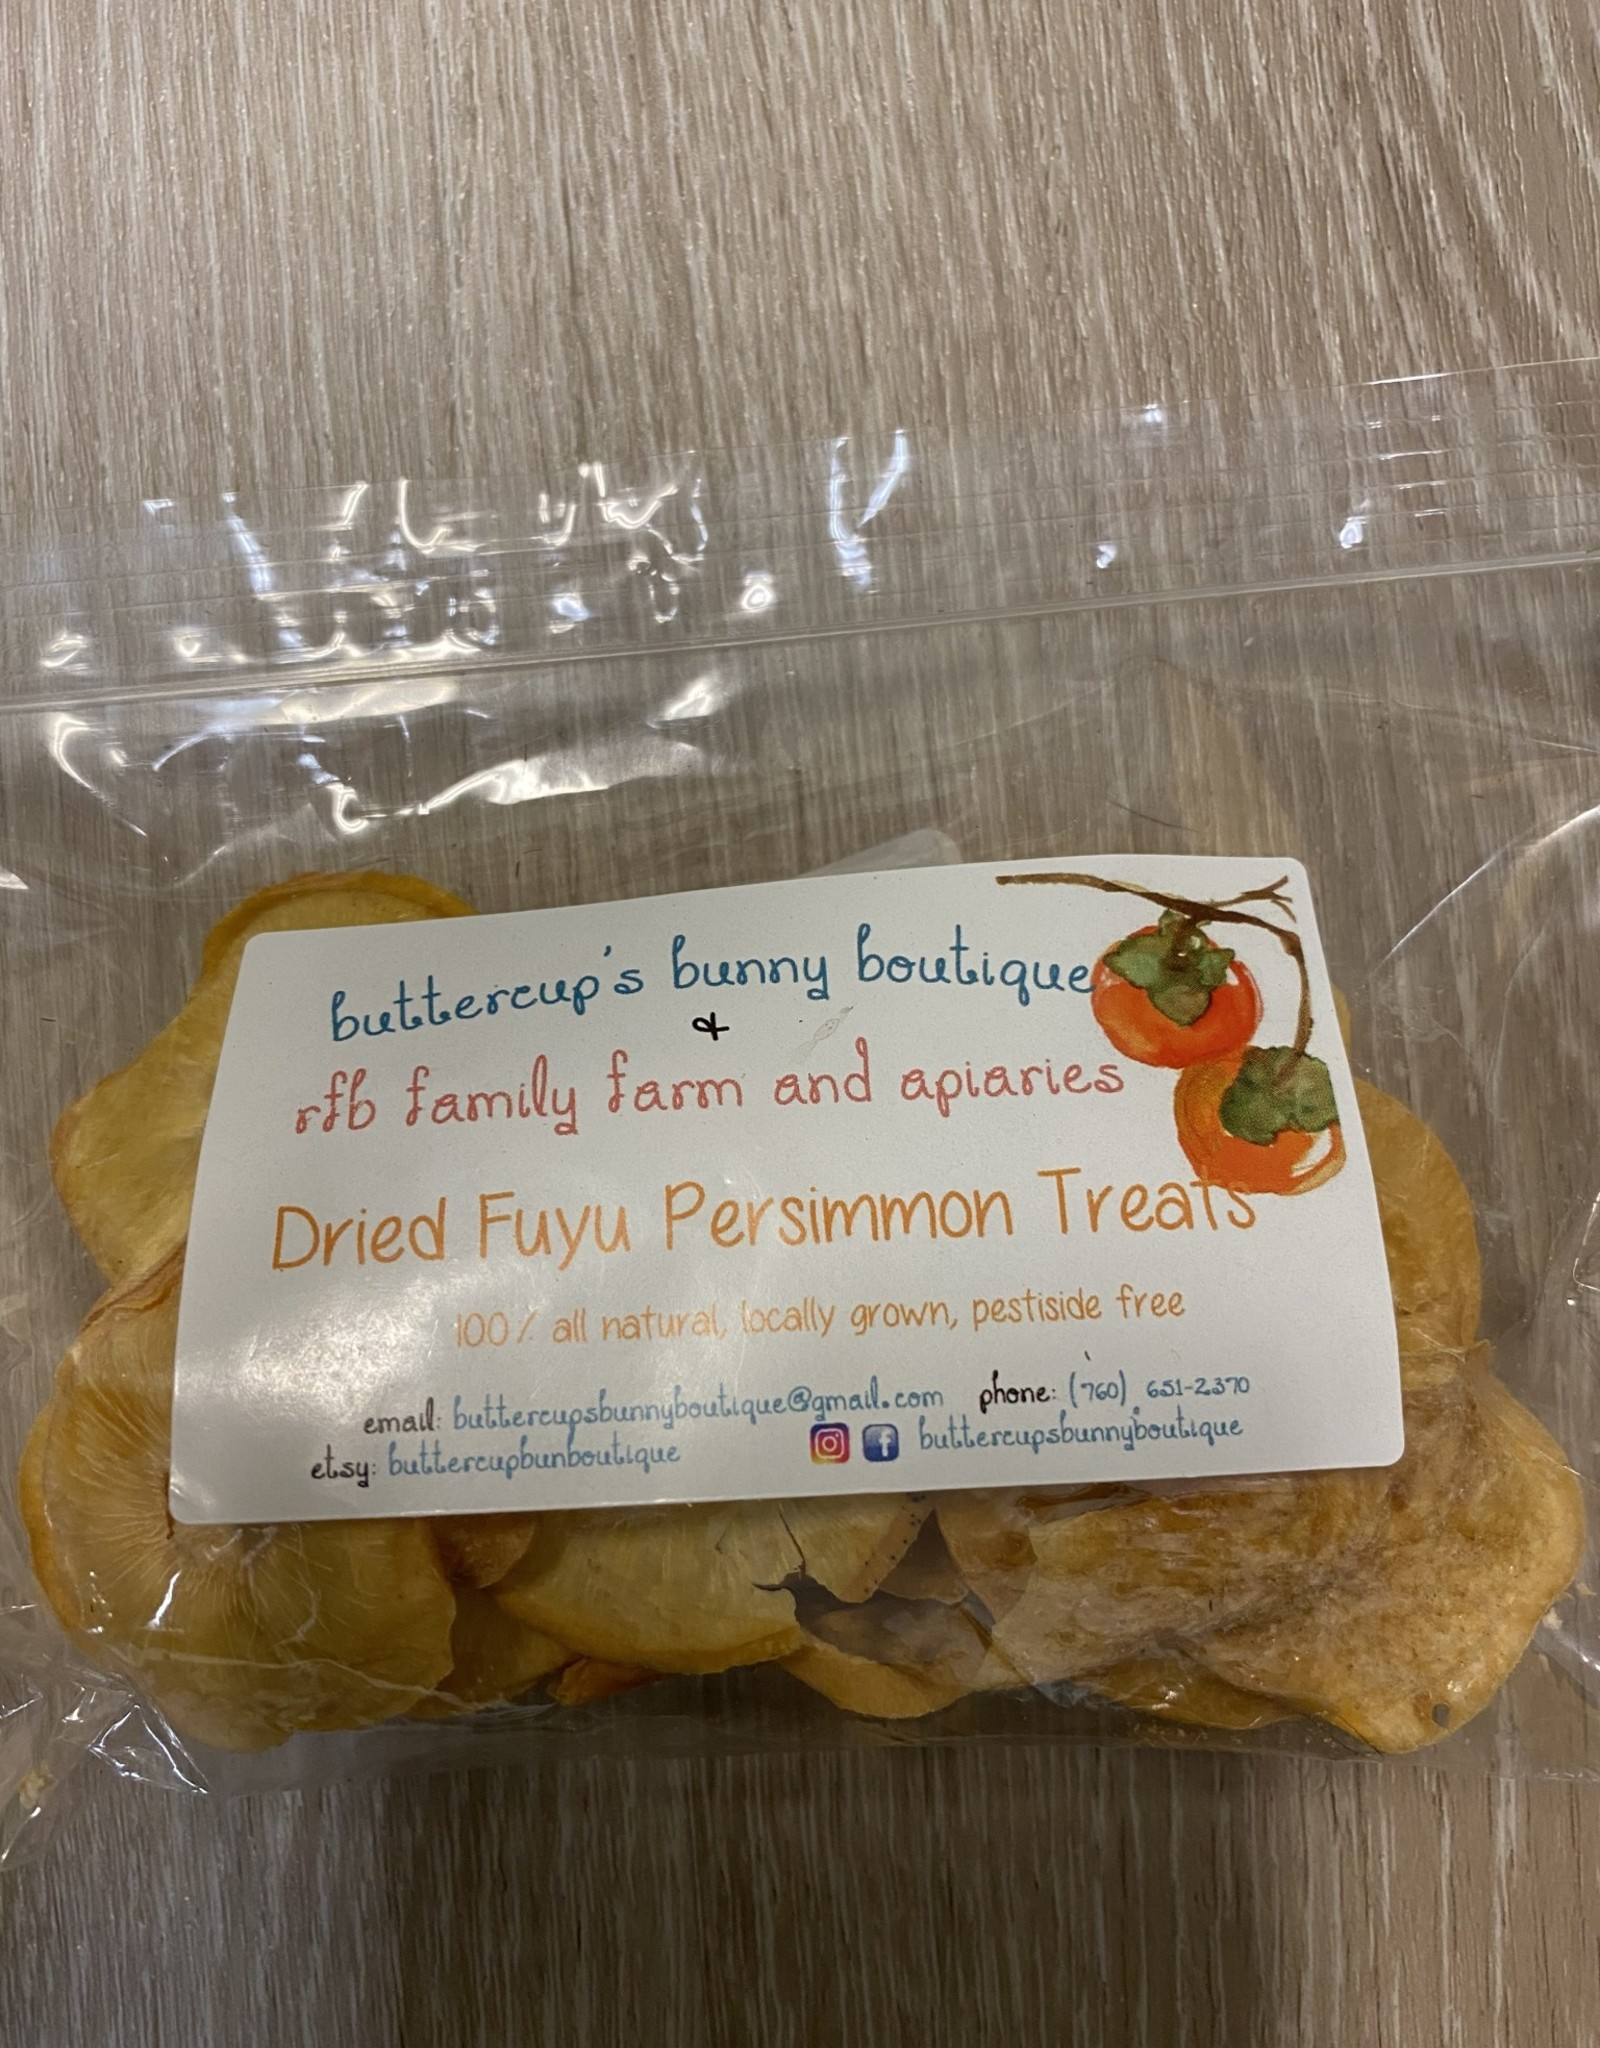 Buttercups Bunny Boutique Dried Persimmon Treats 1oz